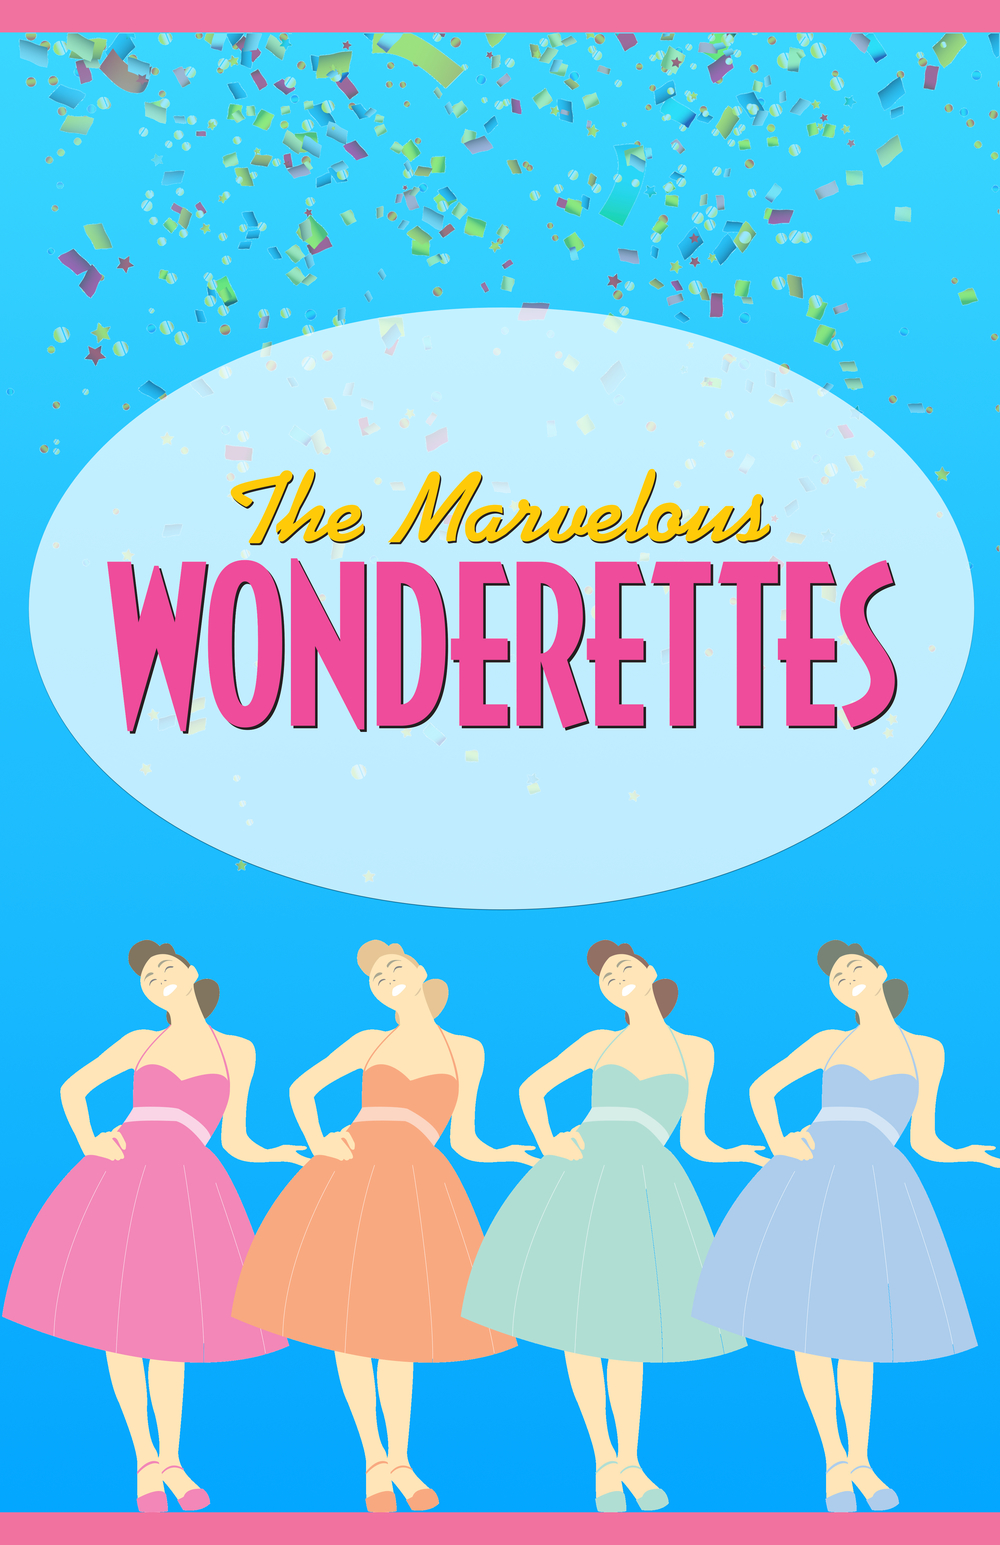 Wonderettes Art Long.jpg